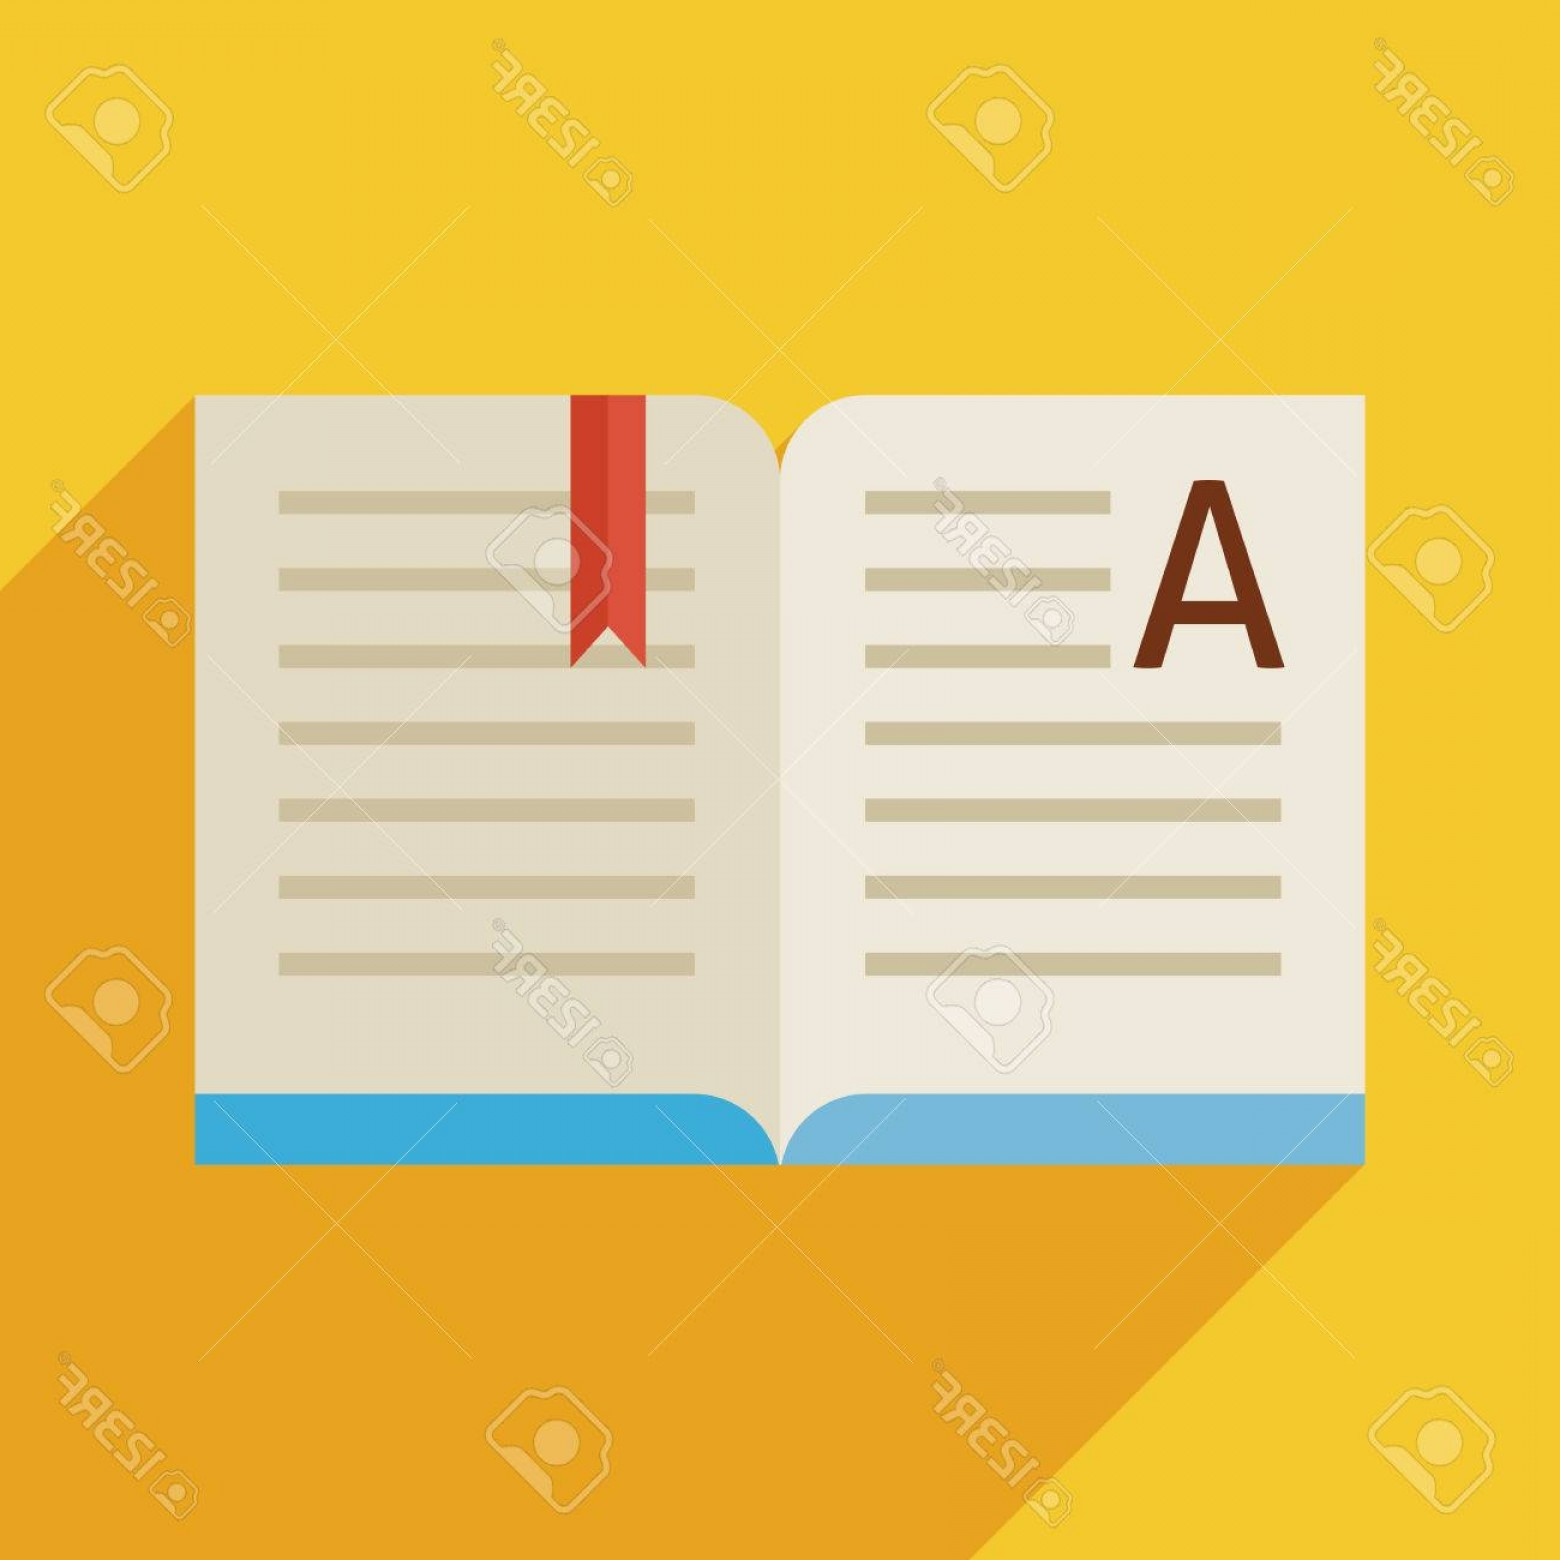 Open Book Vector Flat: Photostock Vector Flat Design Open Book Story Reading Object Back To School And Education Vector Illustration Flat Sty